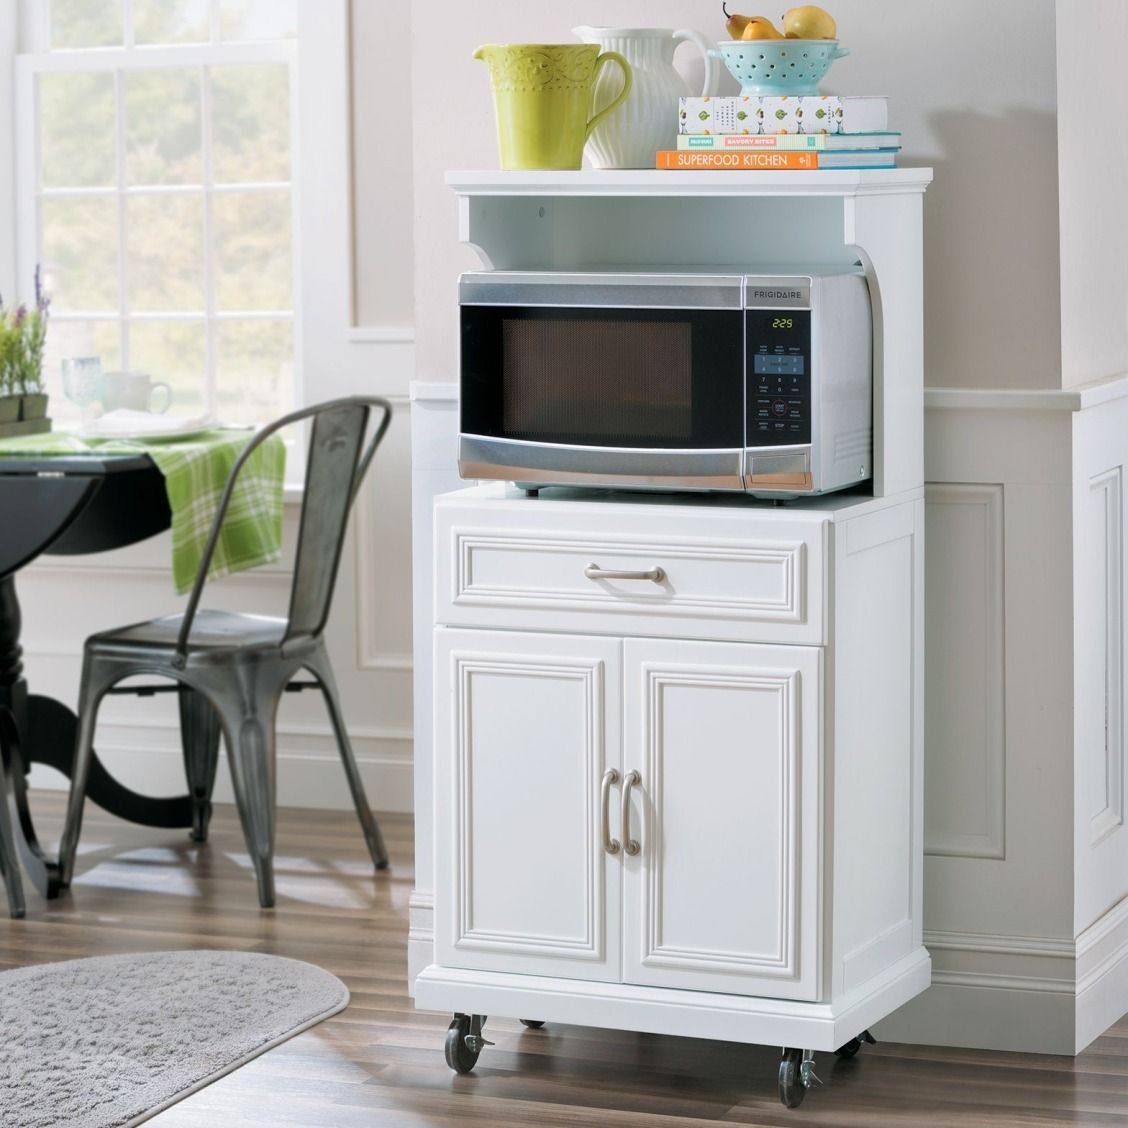 A Handy Small Apartment Furniture Piece This Microwave Cart Has A Built In Outlet And 2 Usb Ports S Small Kitchen Storage Apartment Storage Diy Microwave Cart